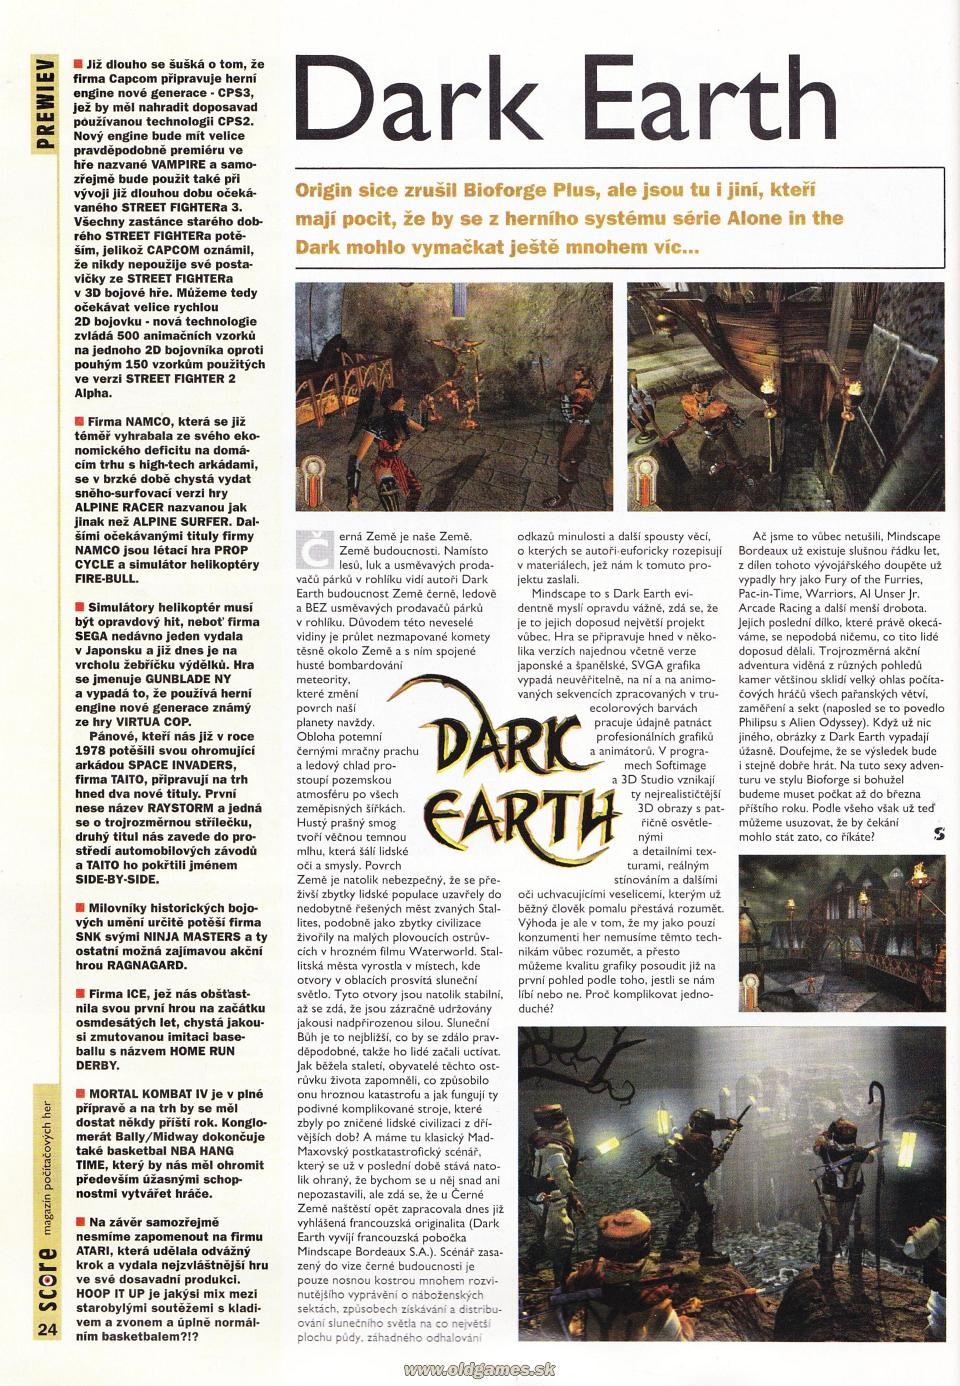 Preview: Dark Earth